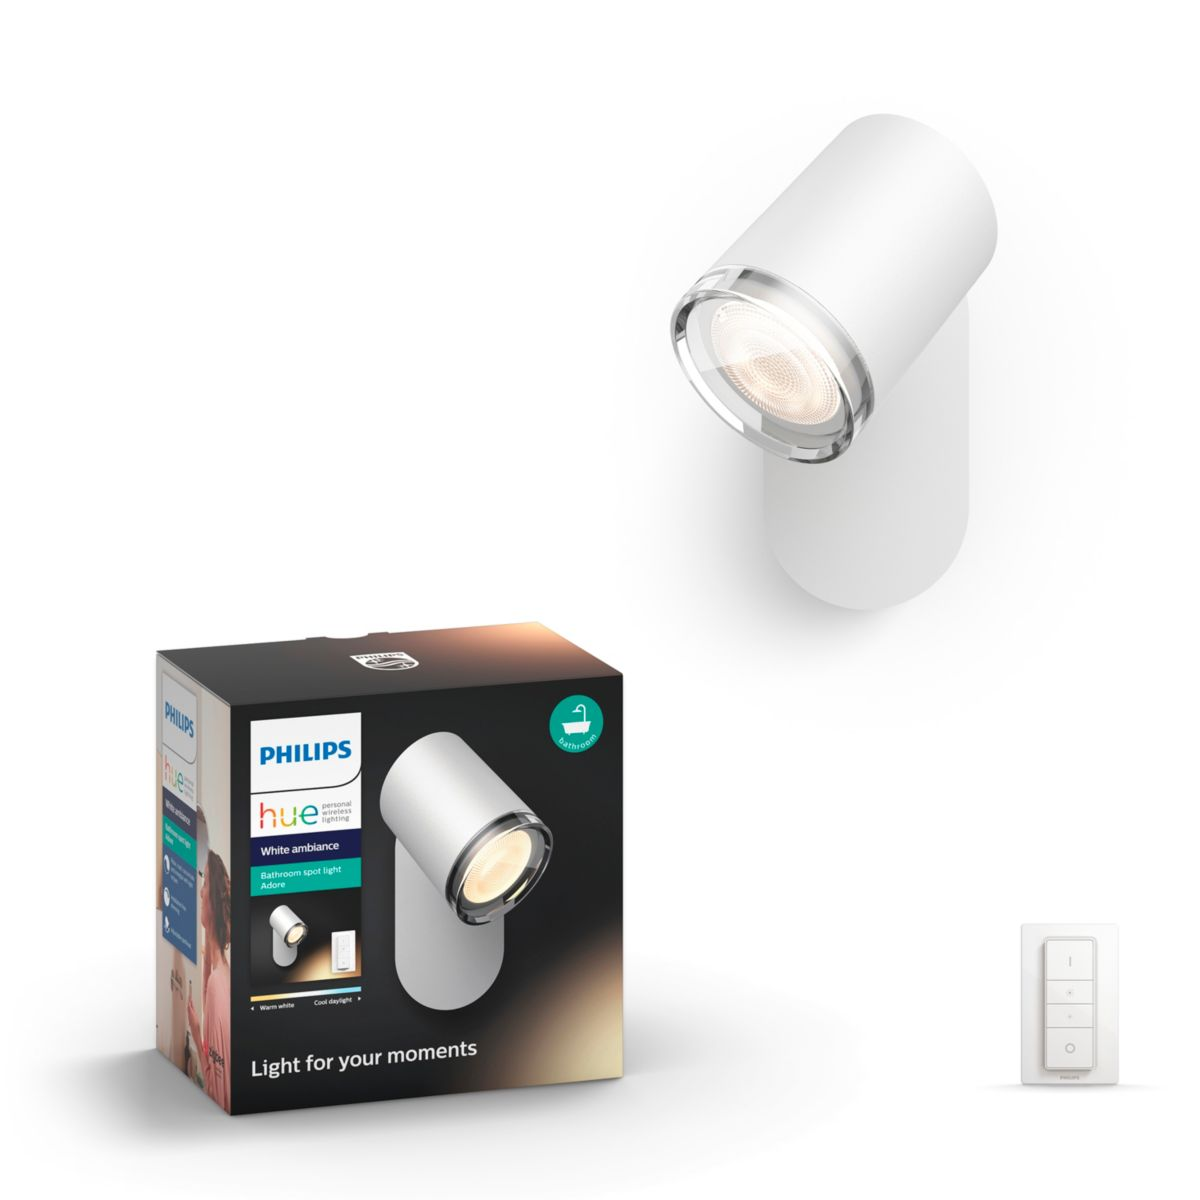 Philips Hue Starter Kit E27 Compare Our Starterkits Philips